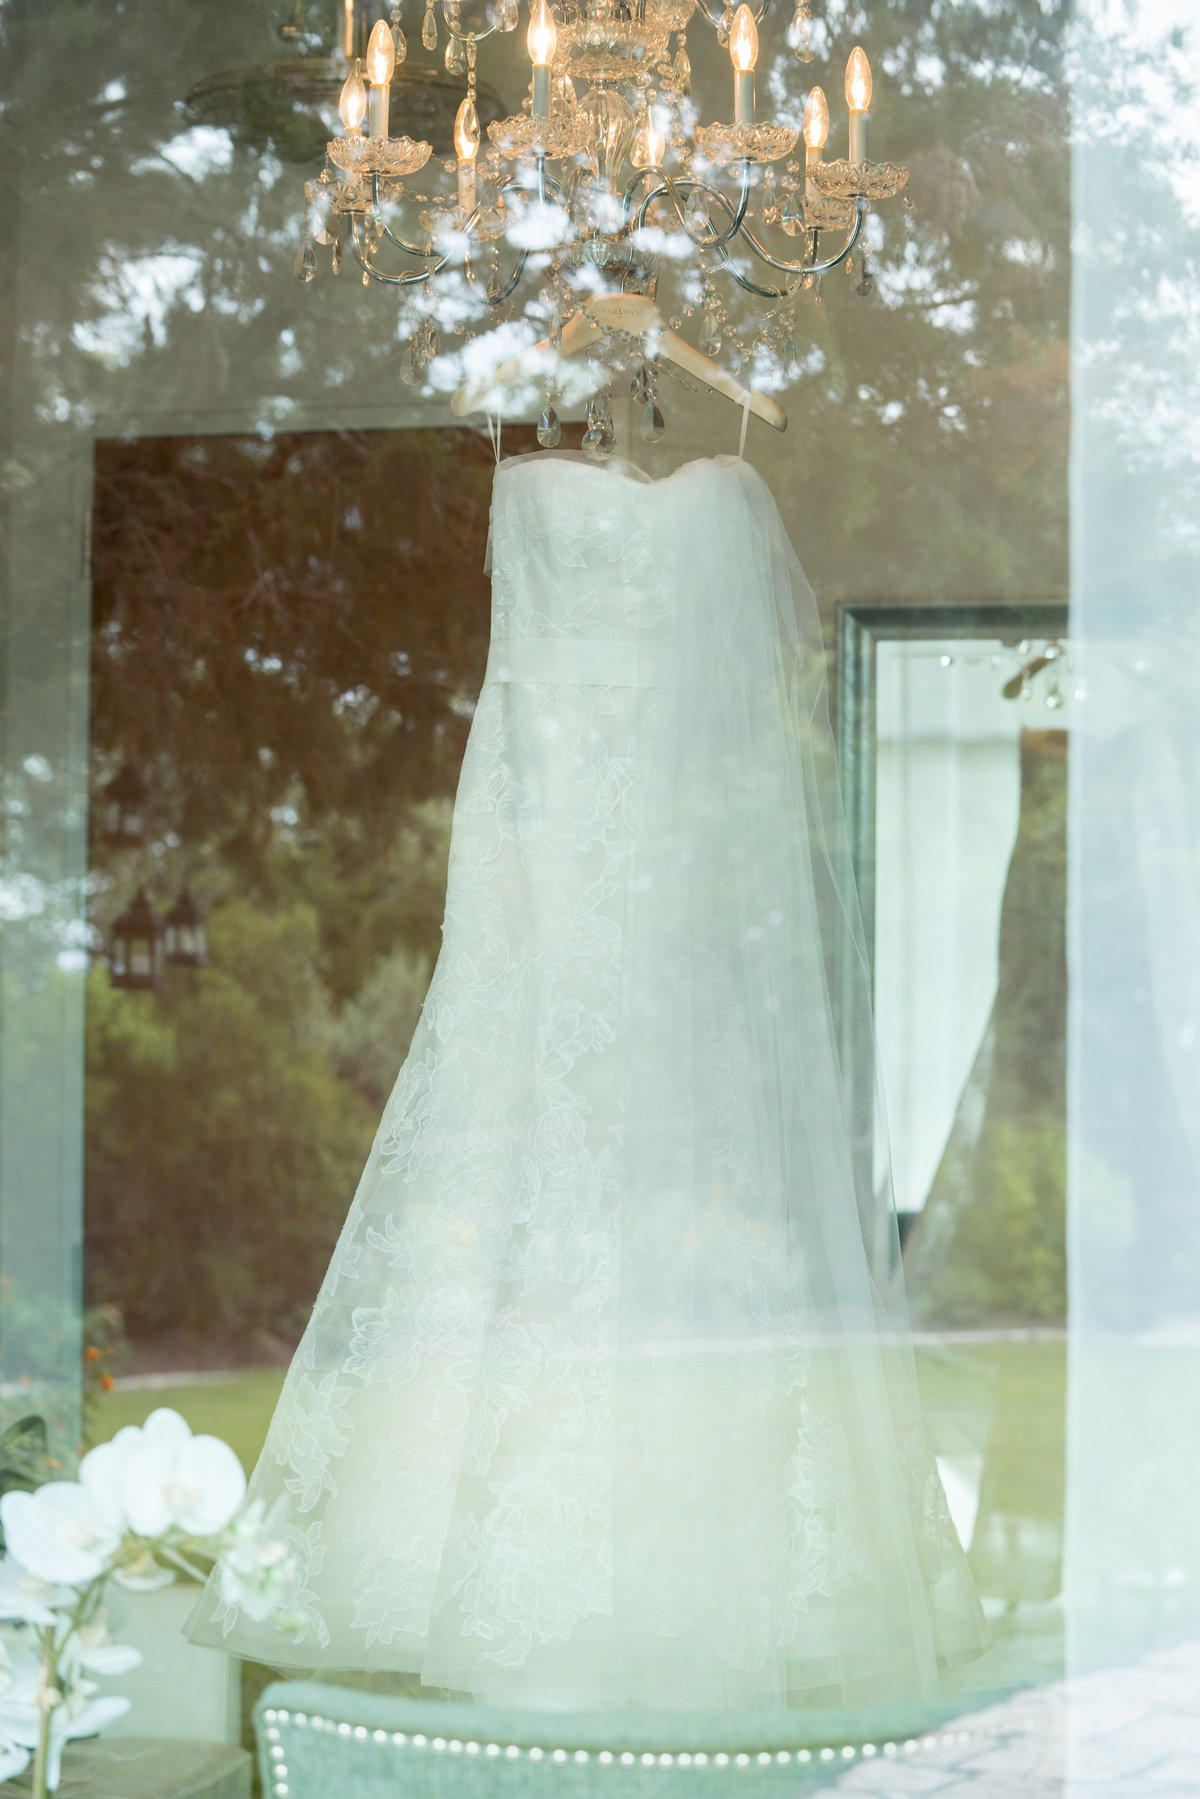 terrace club wedding photographer dress in window 2600 US-290, Dripping Springs, TX 78620